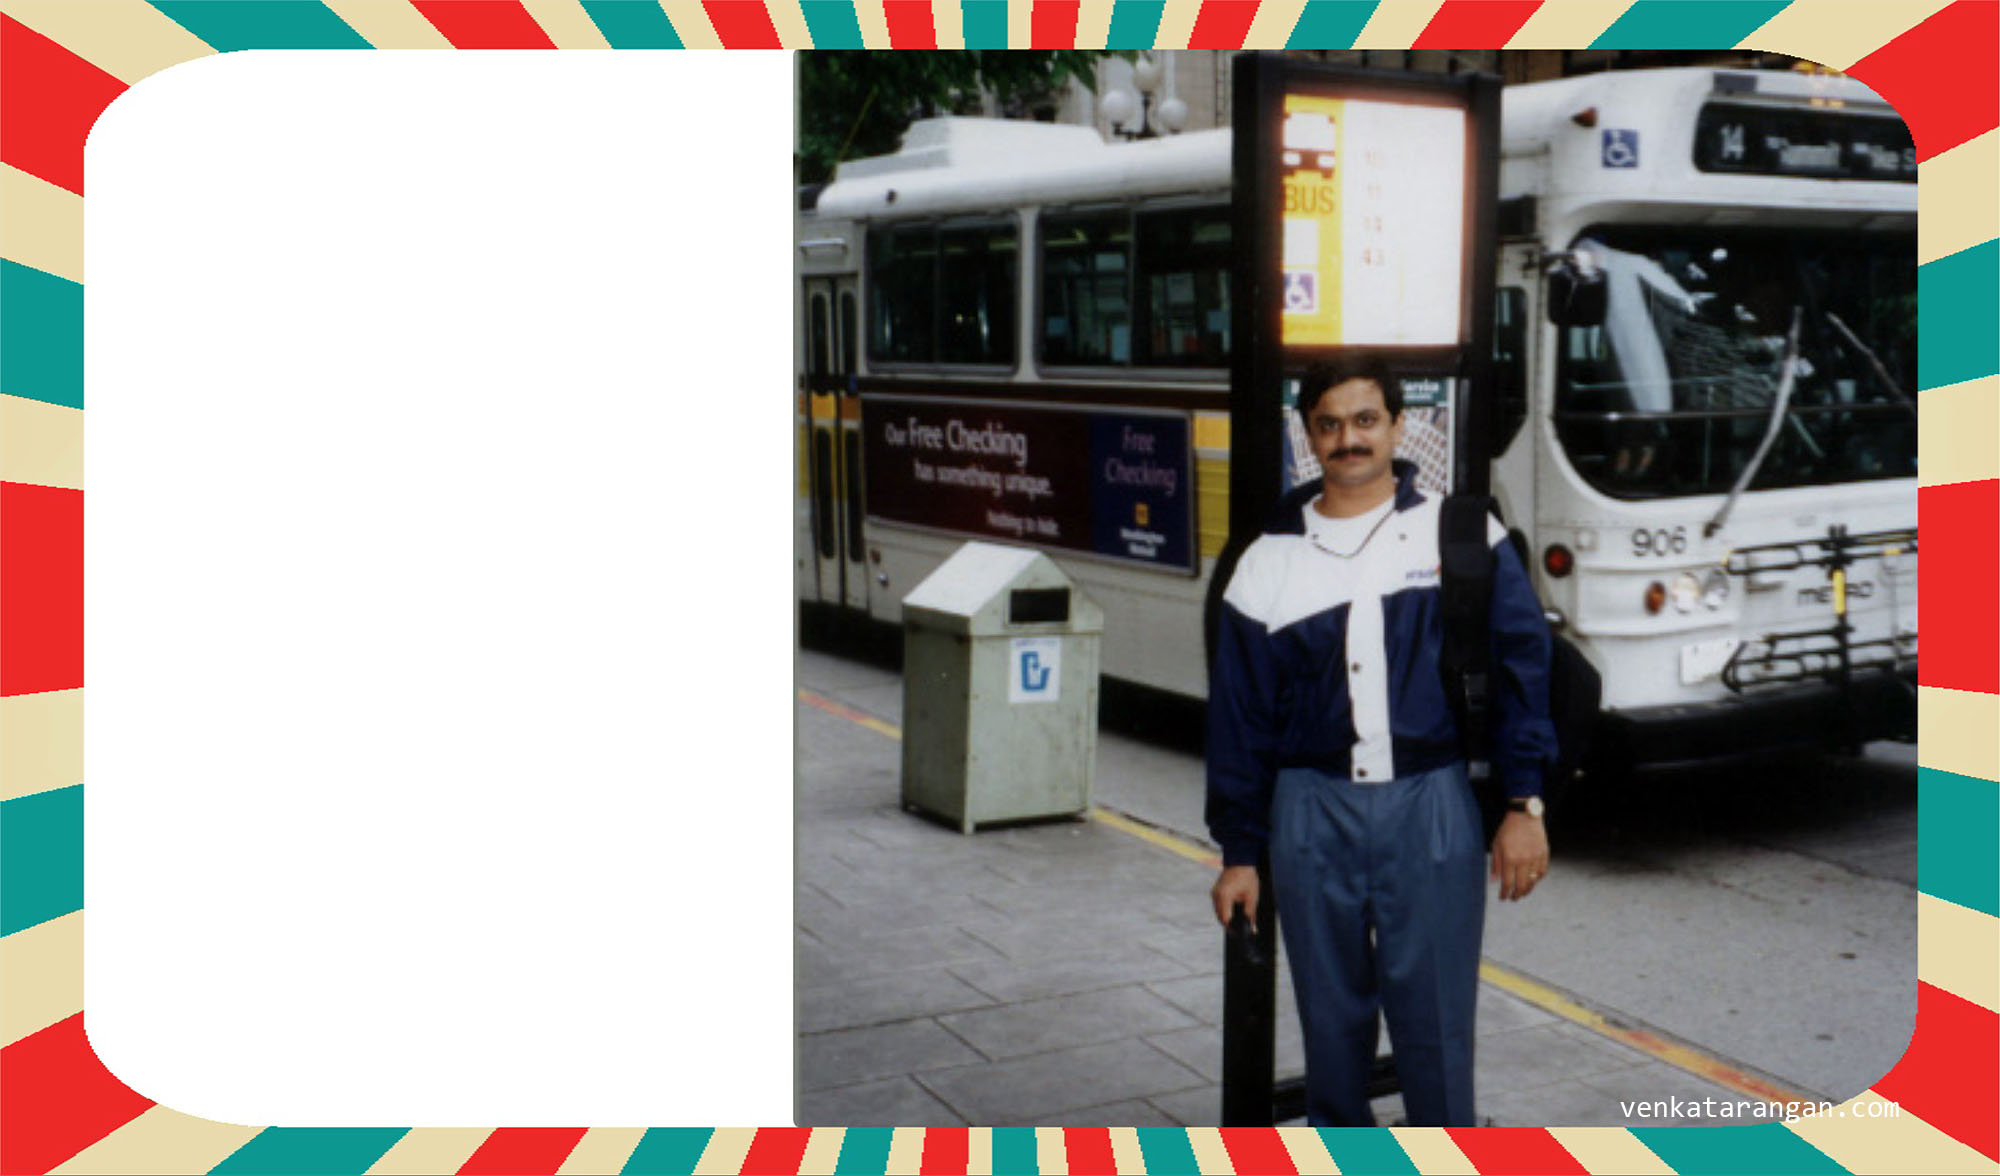 Venkatarangan in downtown Seattle in 2000